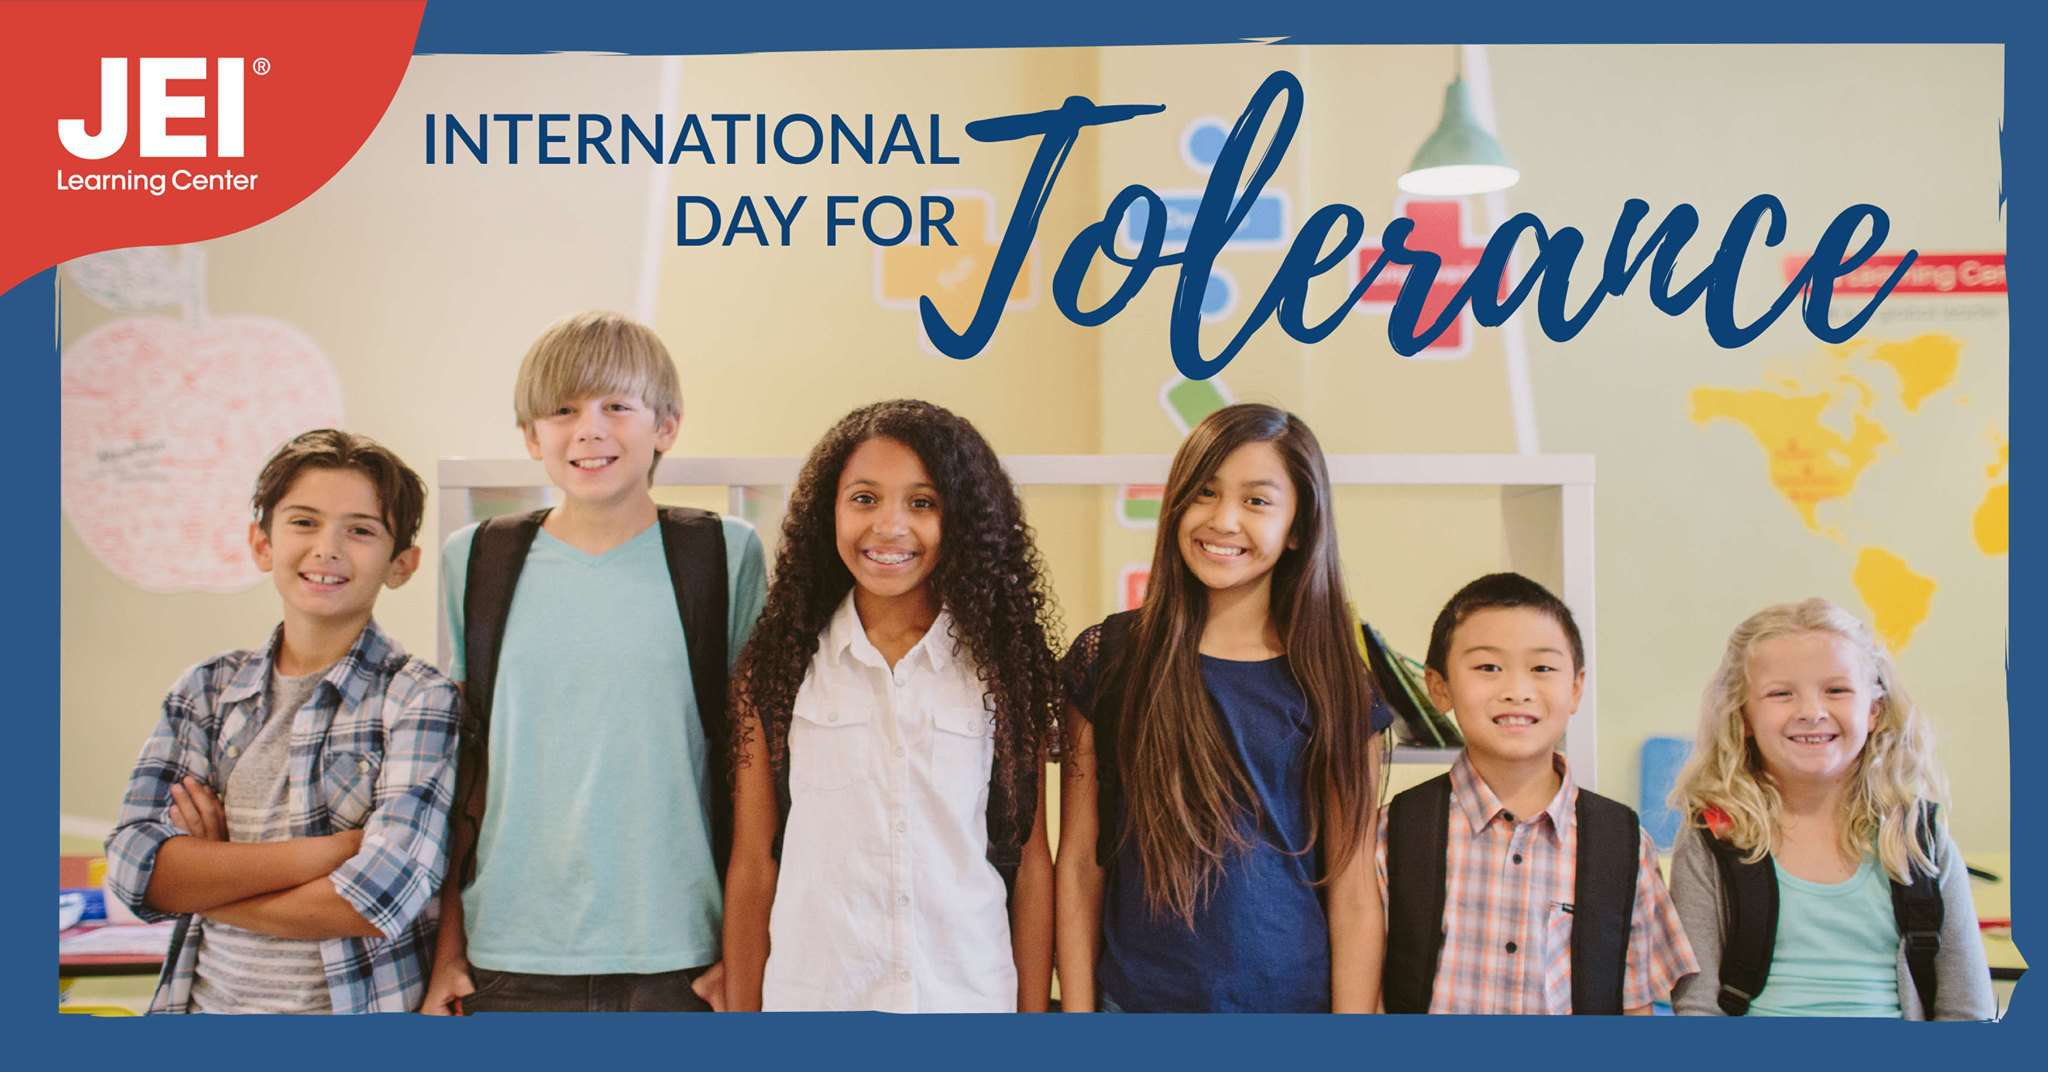 International Day For Tolerance Wishes